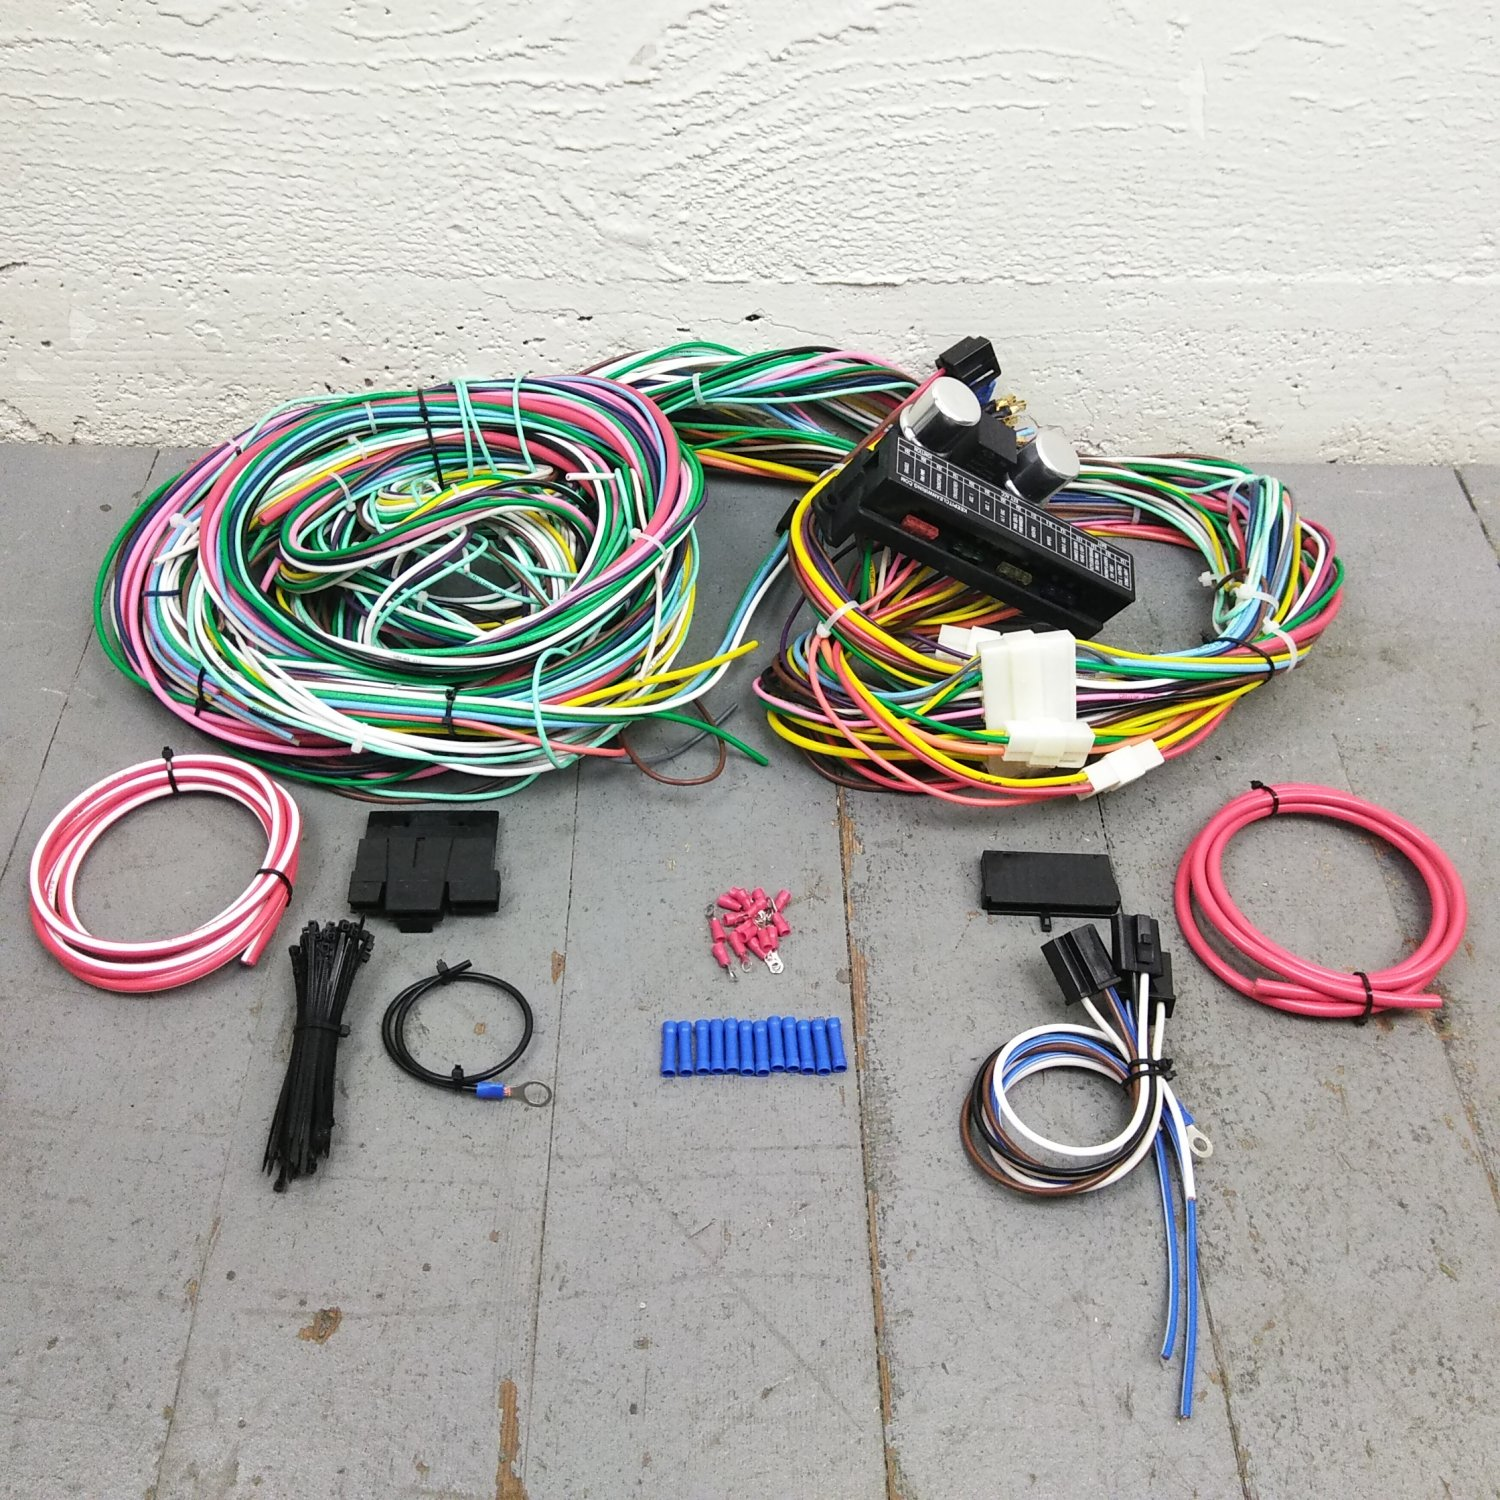 1971 - 1973 Ford Mustang And Cougar Wire Harness Upgrade Kit fits painless  new. Bar_Product_Description_C